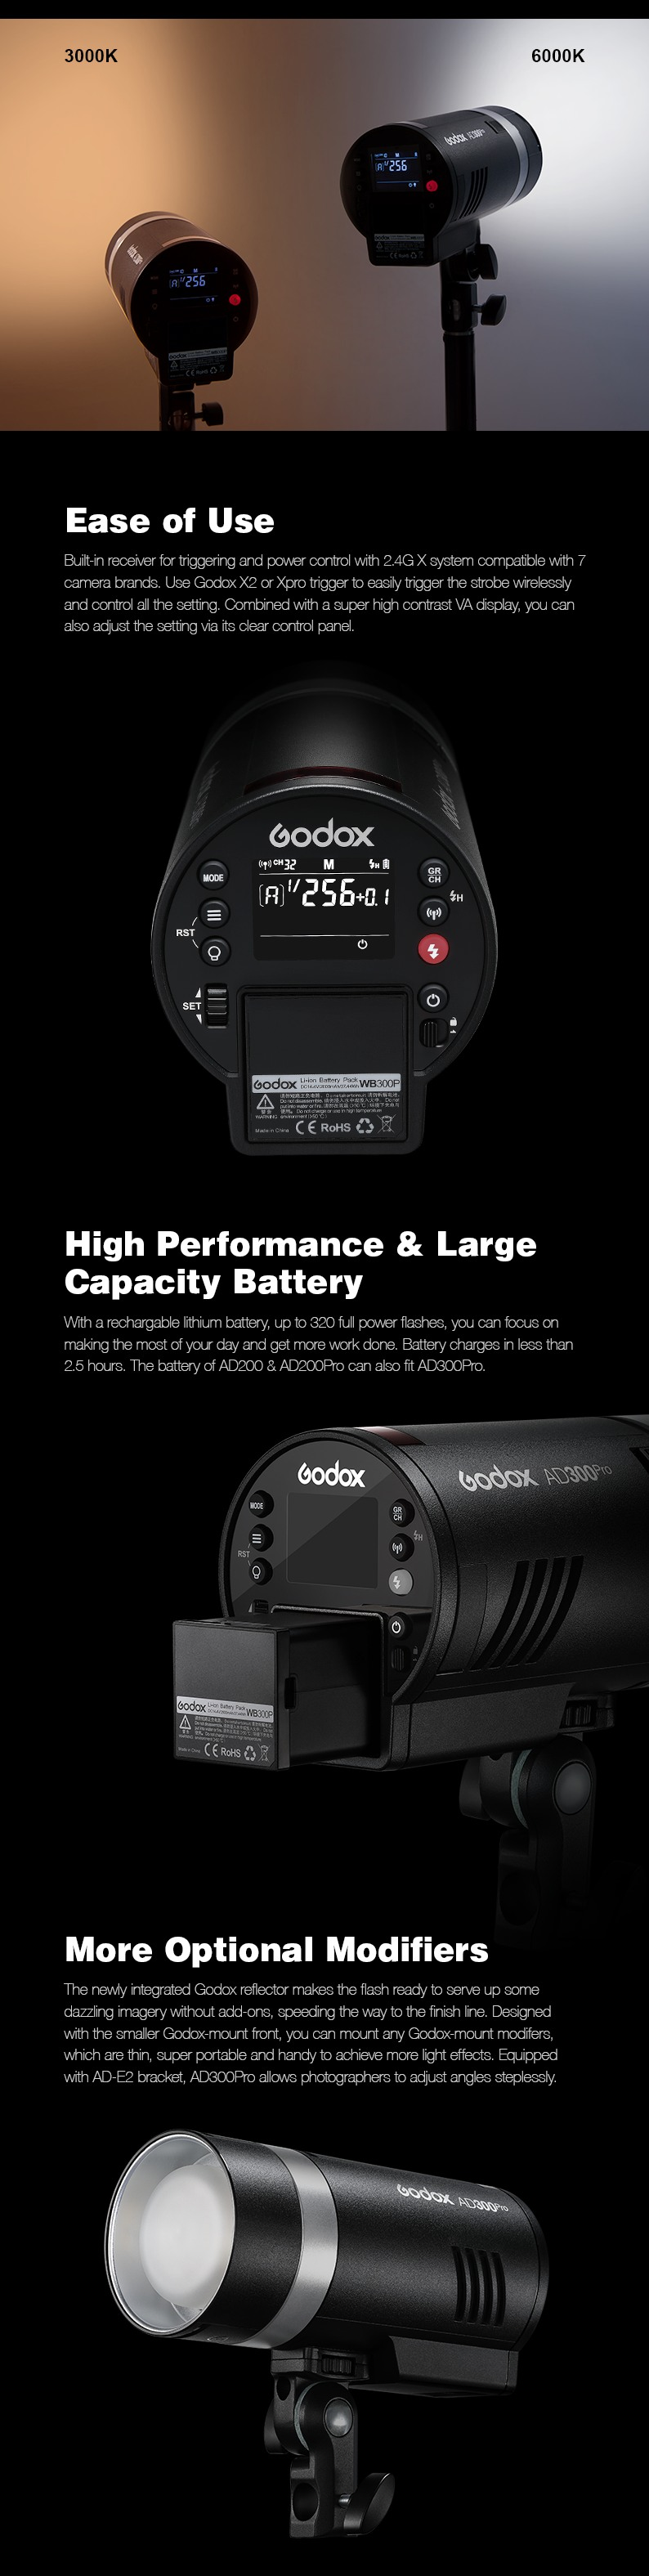 Godox AD300Pro. 3000K-6000K. Ease of Use. High Performance and Large Capability Battery. More Optional Modifiers